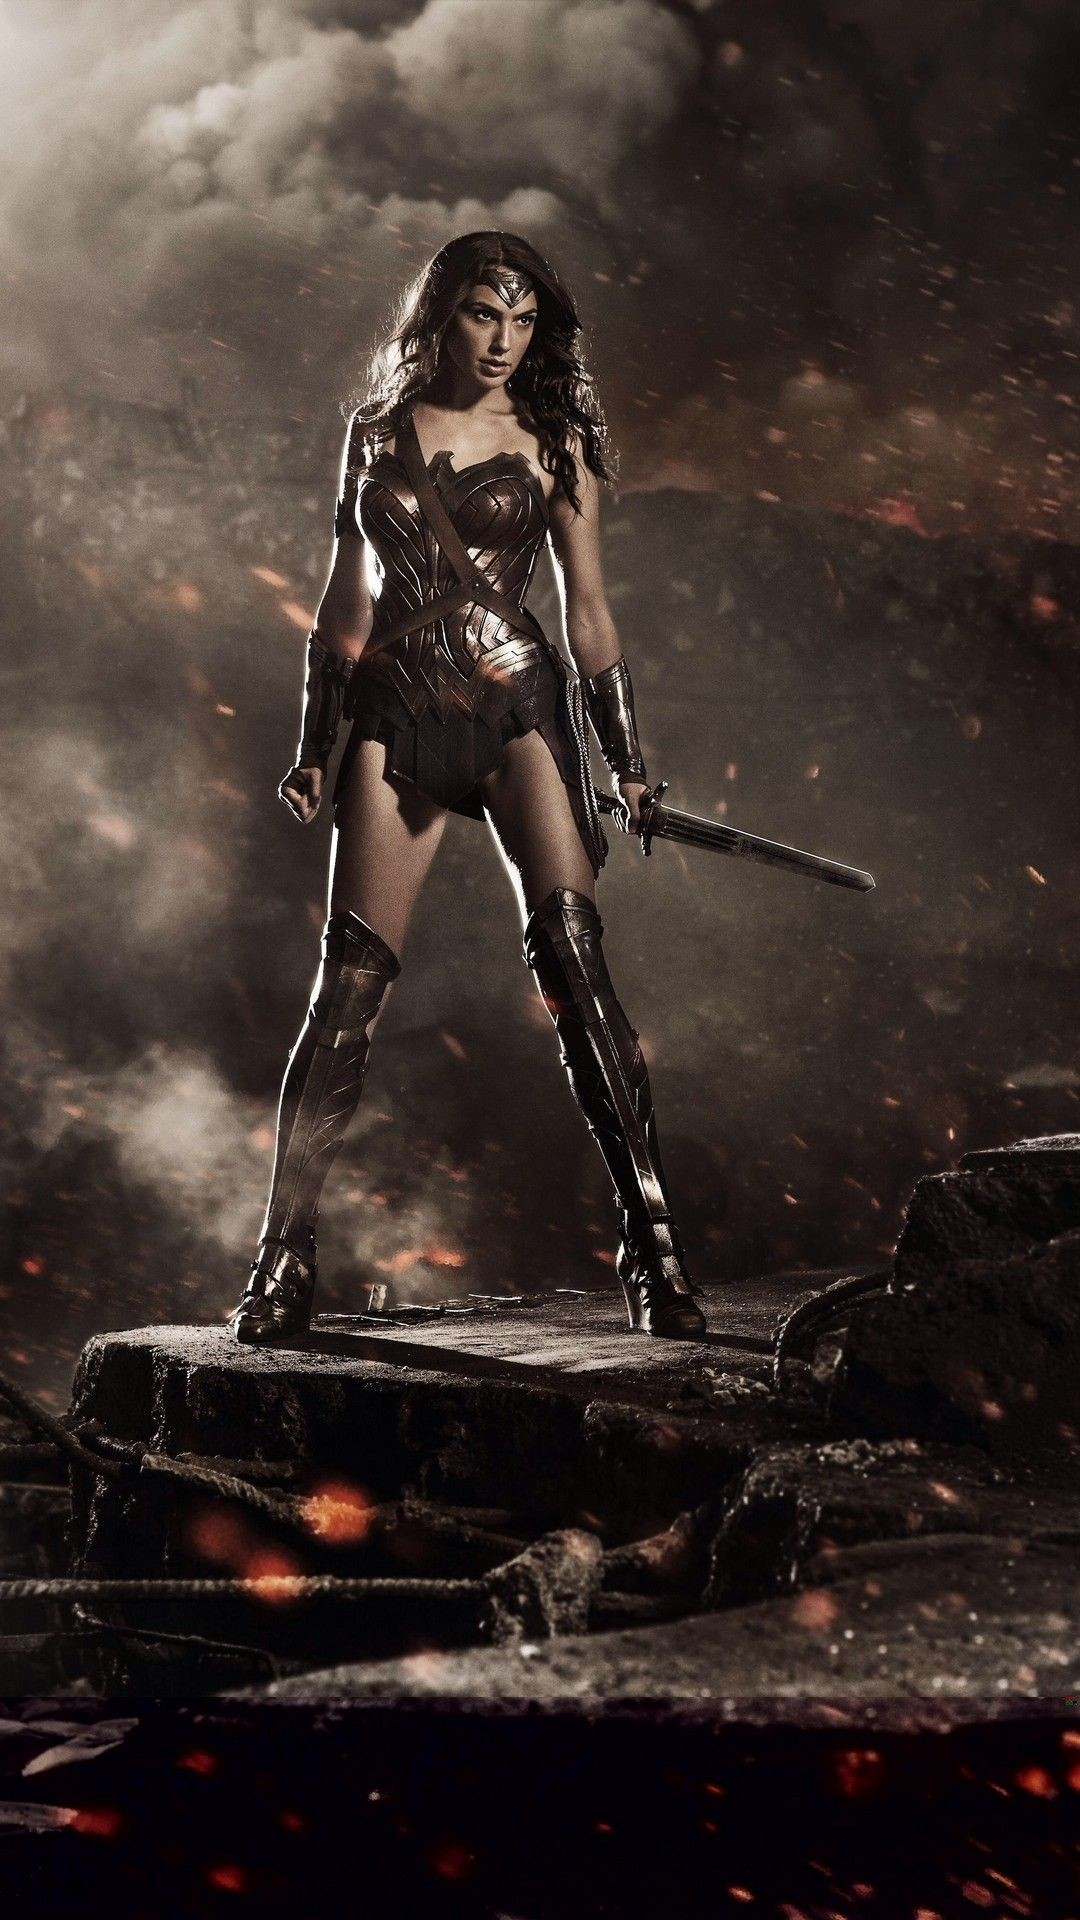 1080x1920 Gal Gadot Wonder Woman iPhone Wallpaper - Best iPhone Wallpaper